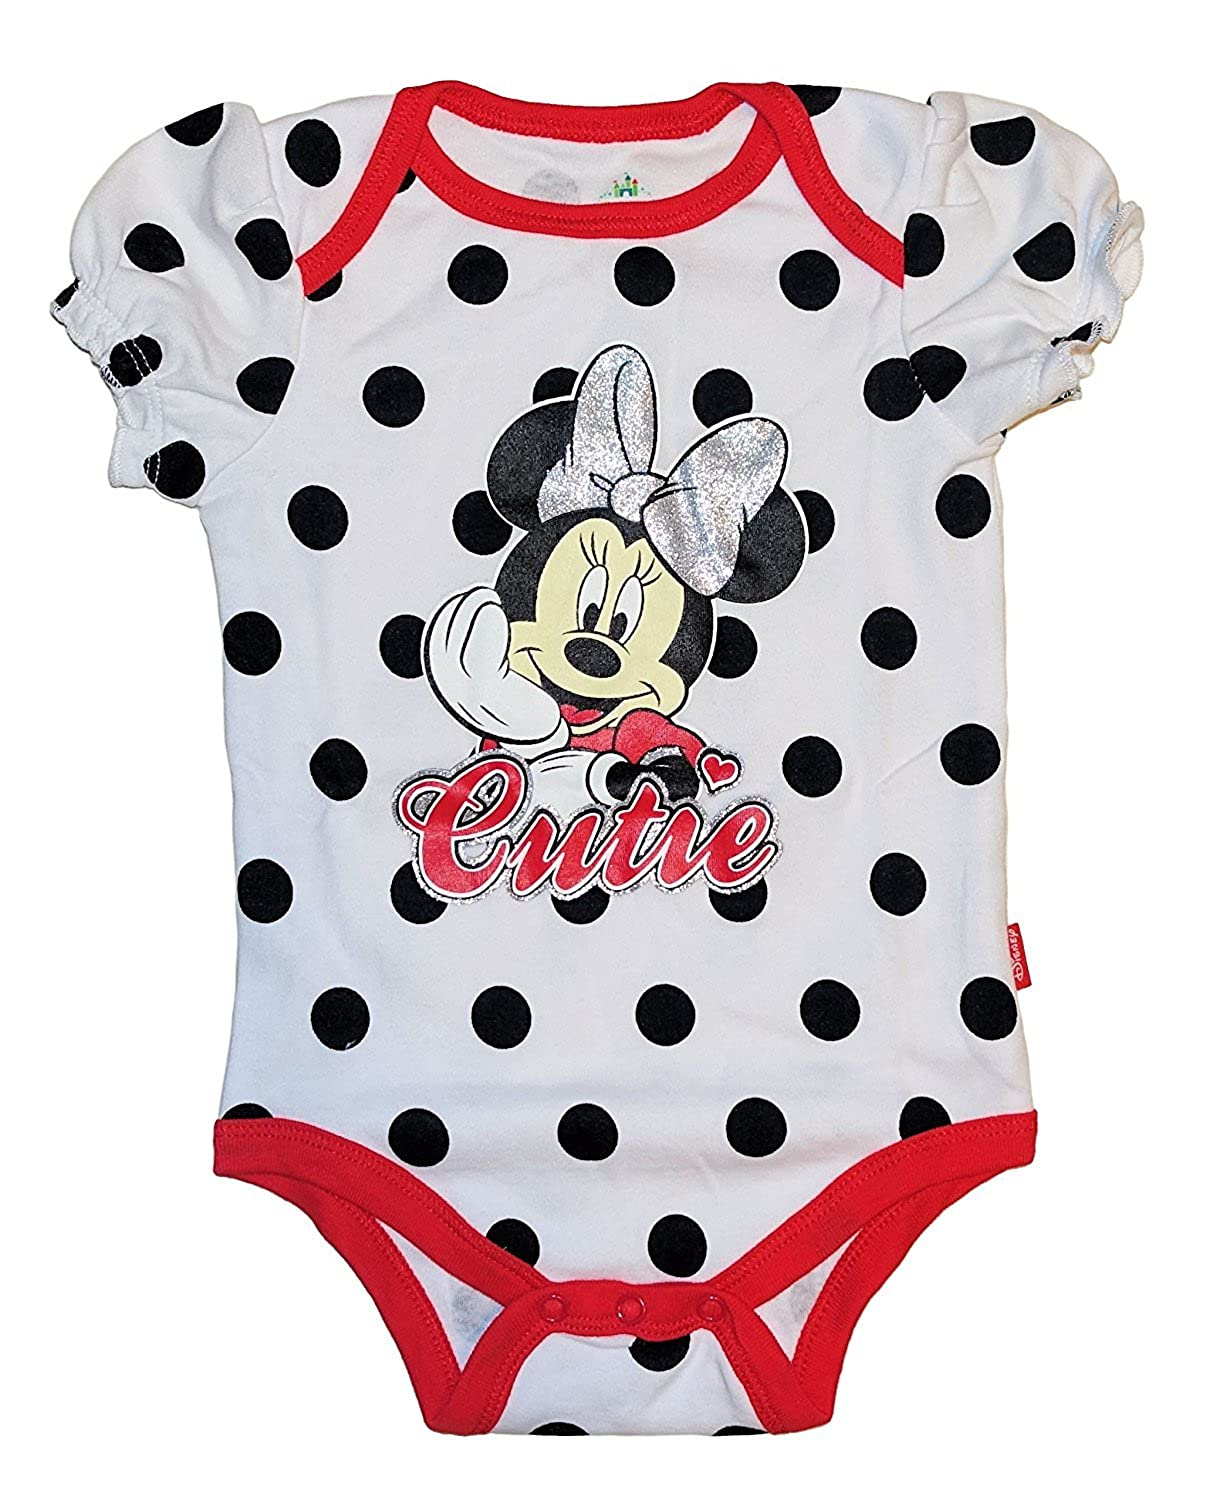 394108e571ca3 Disney Mickey & Minnie Mouse Baby Boys & Girls Bodysuit Dress Up Outfit